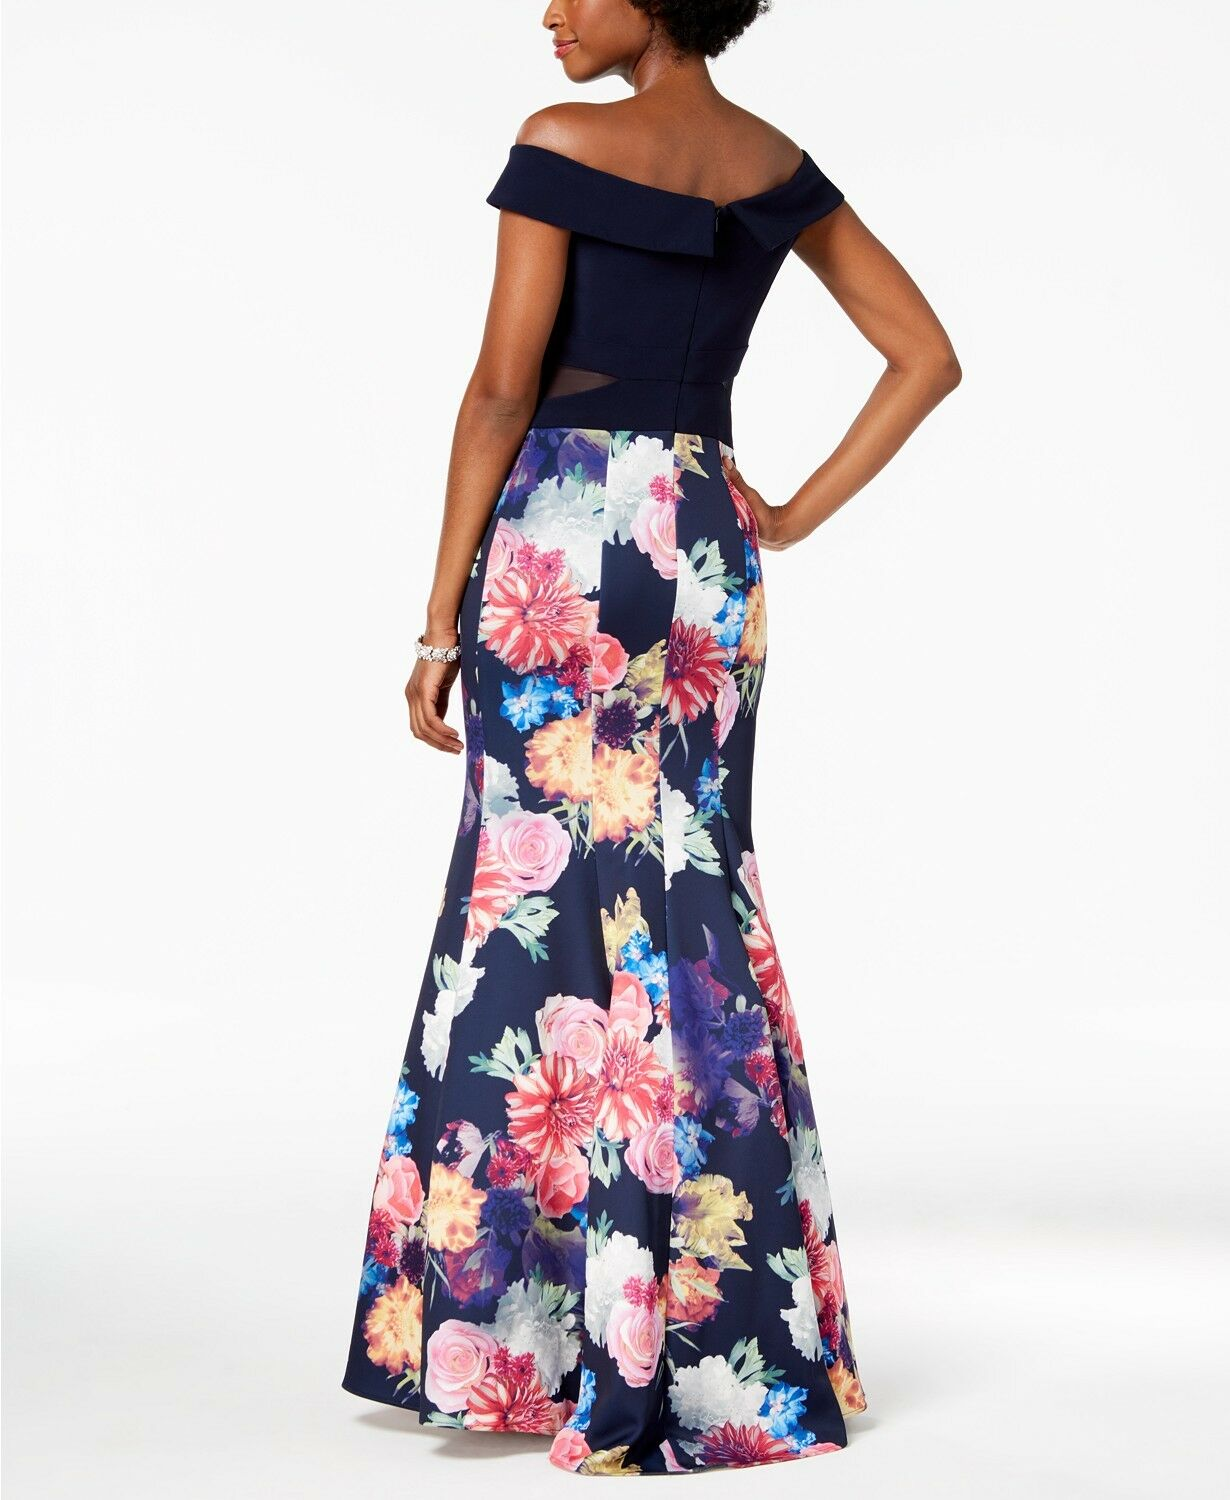 405 XSCAPE WOMEN'S blueE PINK FLORAL OFF-THE-SHOULDER MERMAID GOWN DRESS SIZE 2 1508f5